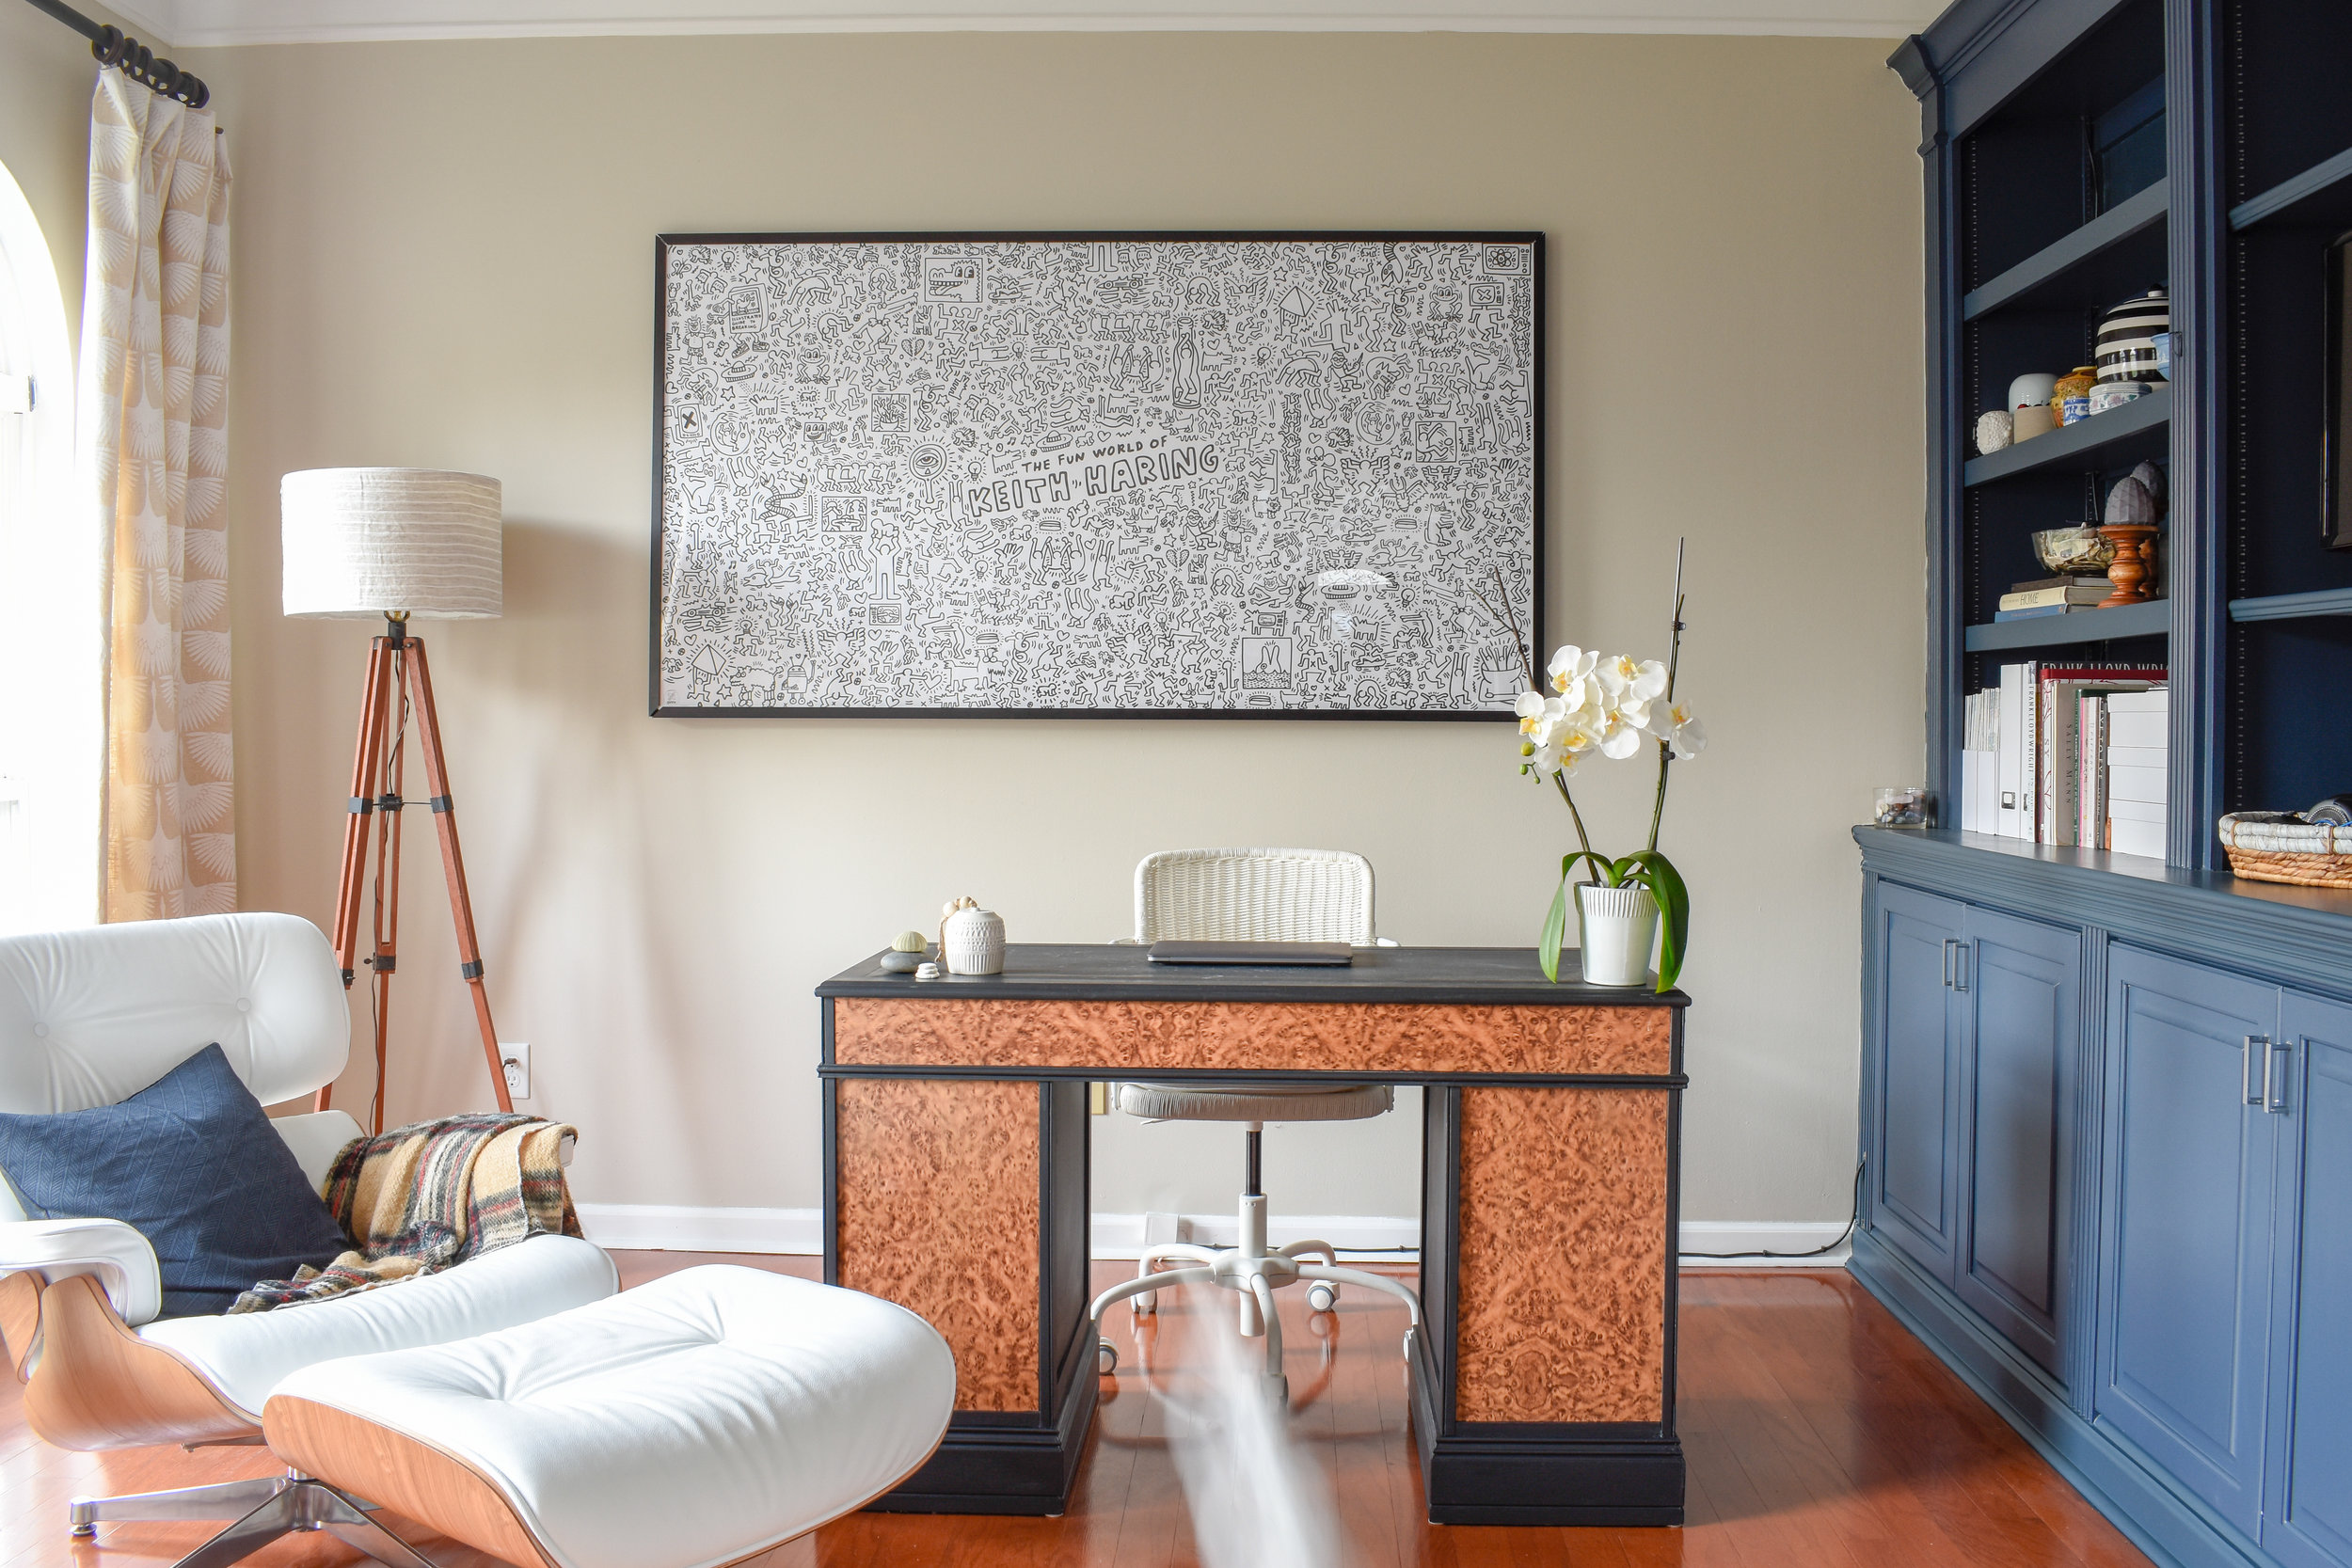 Shared Home Office Blending Decor Styles For A Space That Works Harmoniously T Moore Home Design Diy And Affordable Decorating Ideas